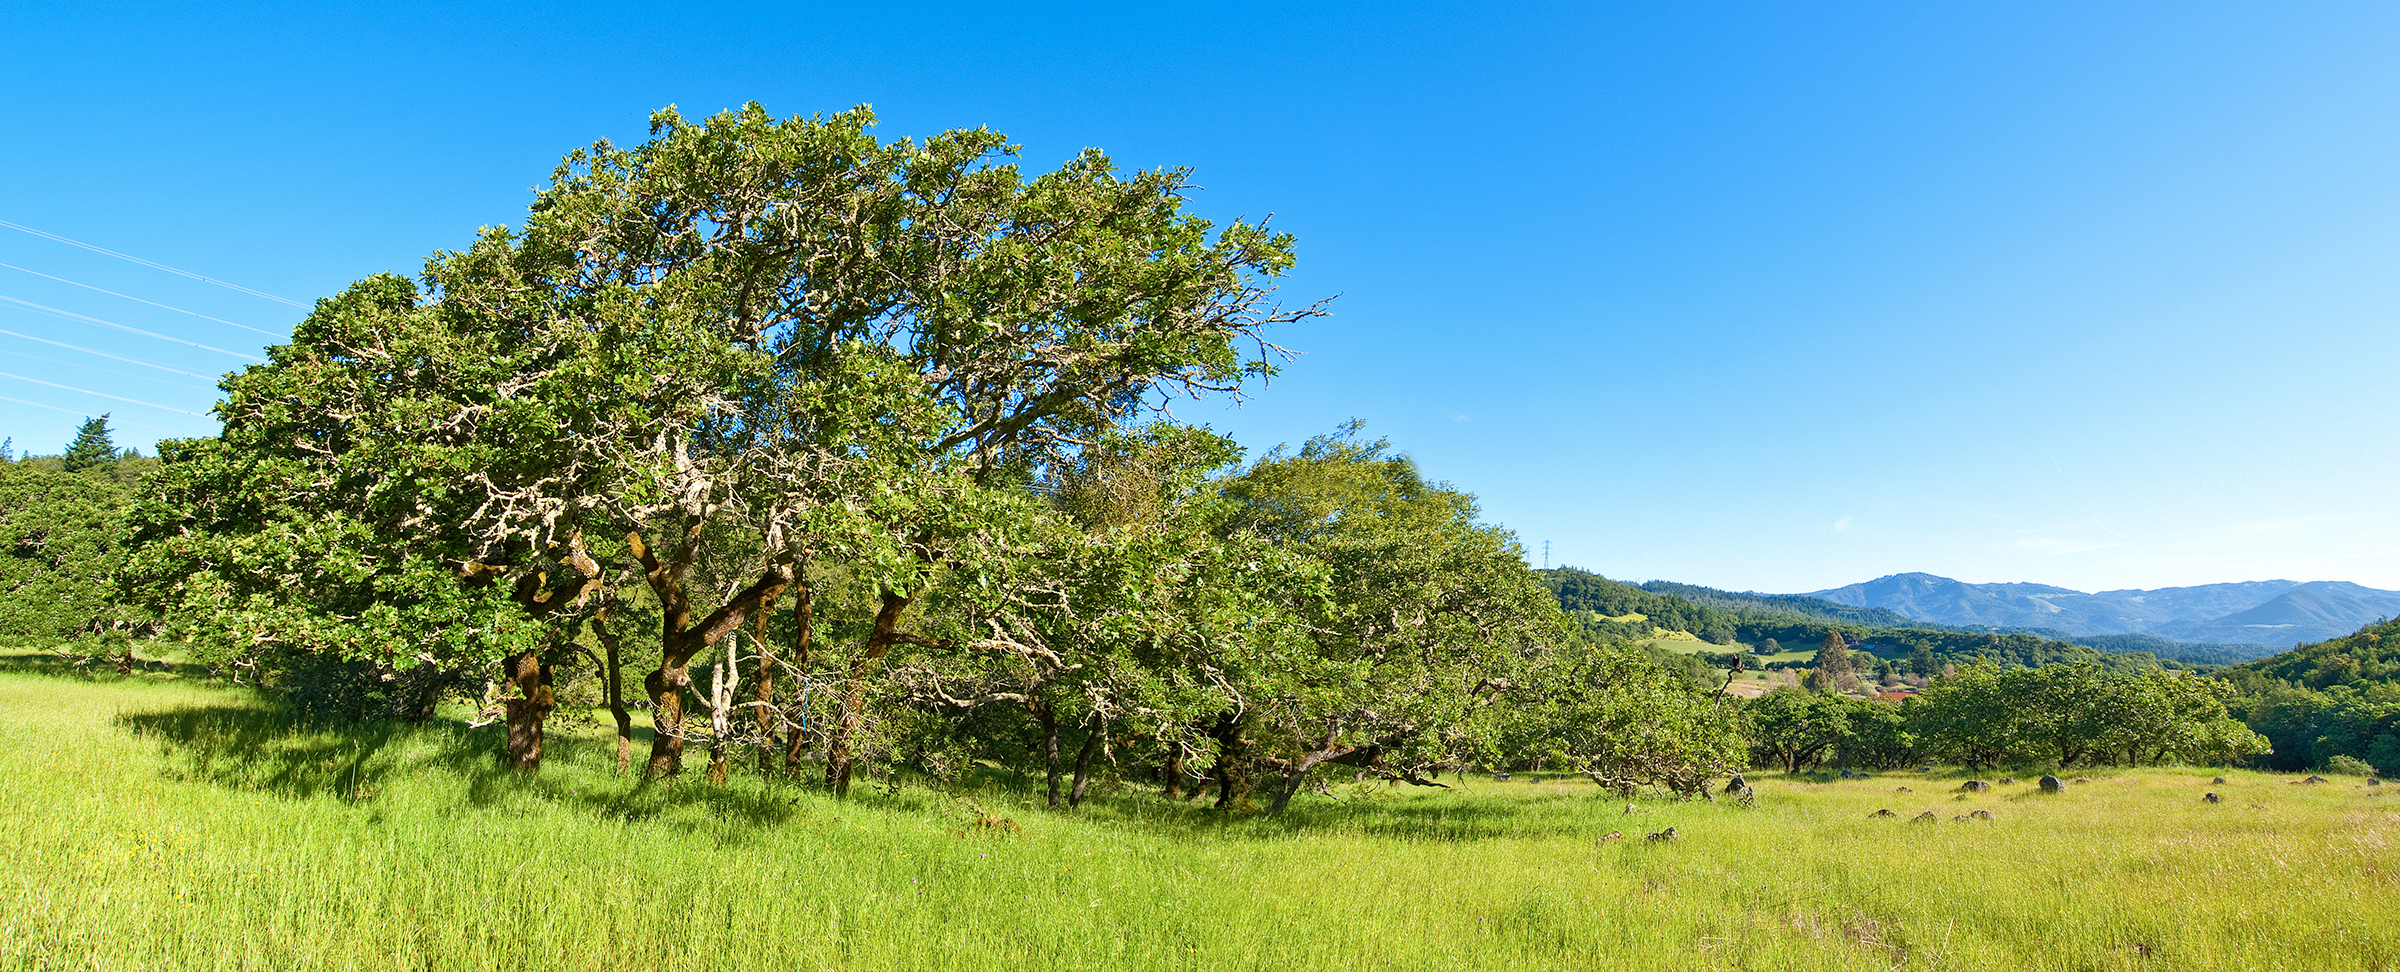 In landmark decision, judge upholds law protecting conservation land in Sonoma County - Sonoma Land Trust